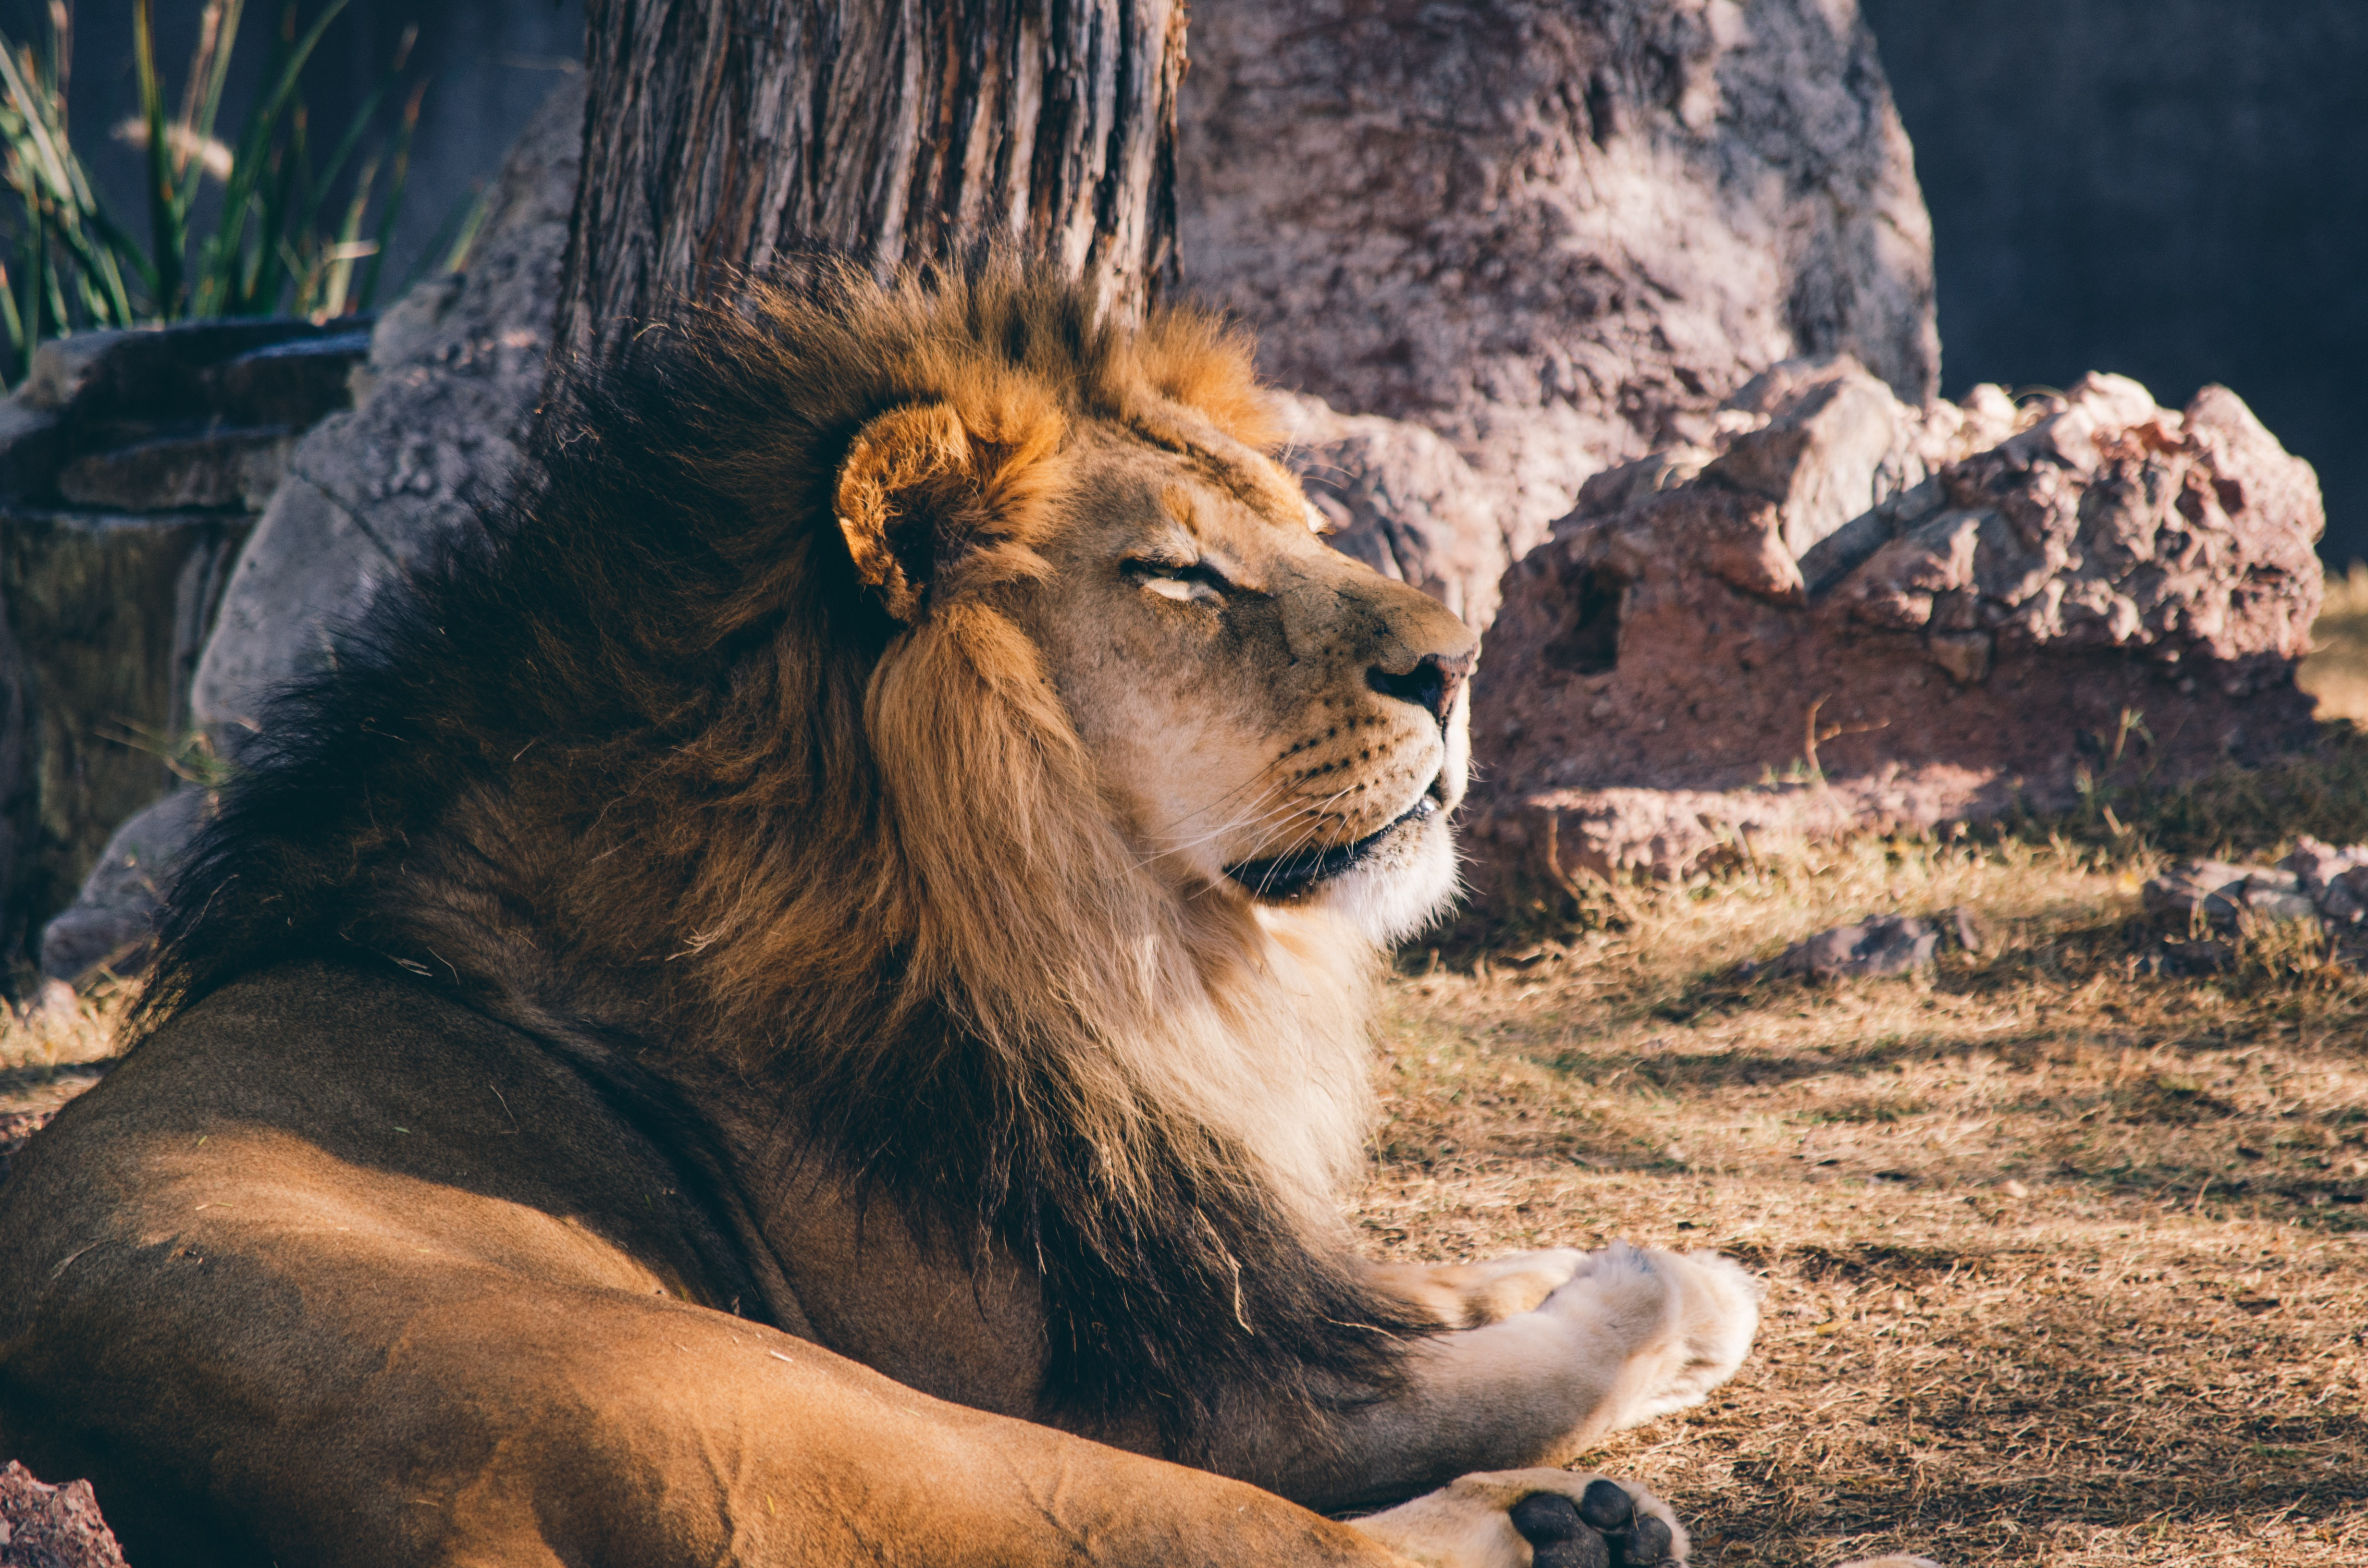 A large male lion basking in the sun in the Phoenix Zoo